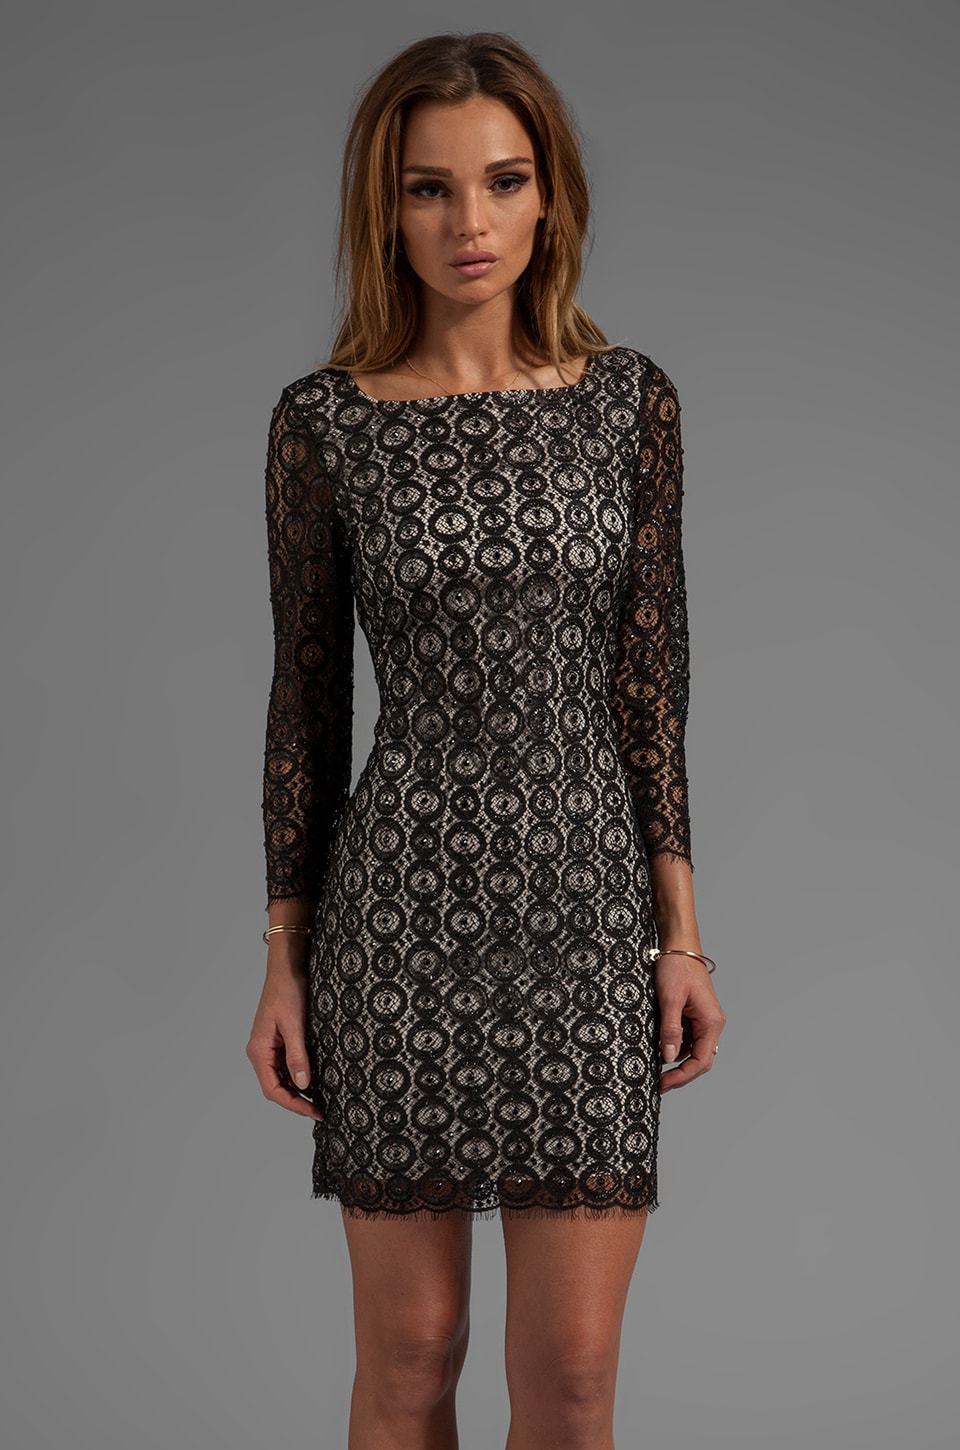 Diane von Furstenberg Zarah Beaded Lace Dress in Black/Nude